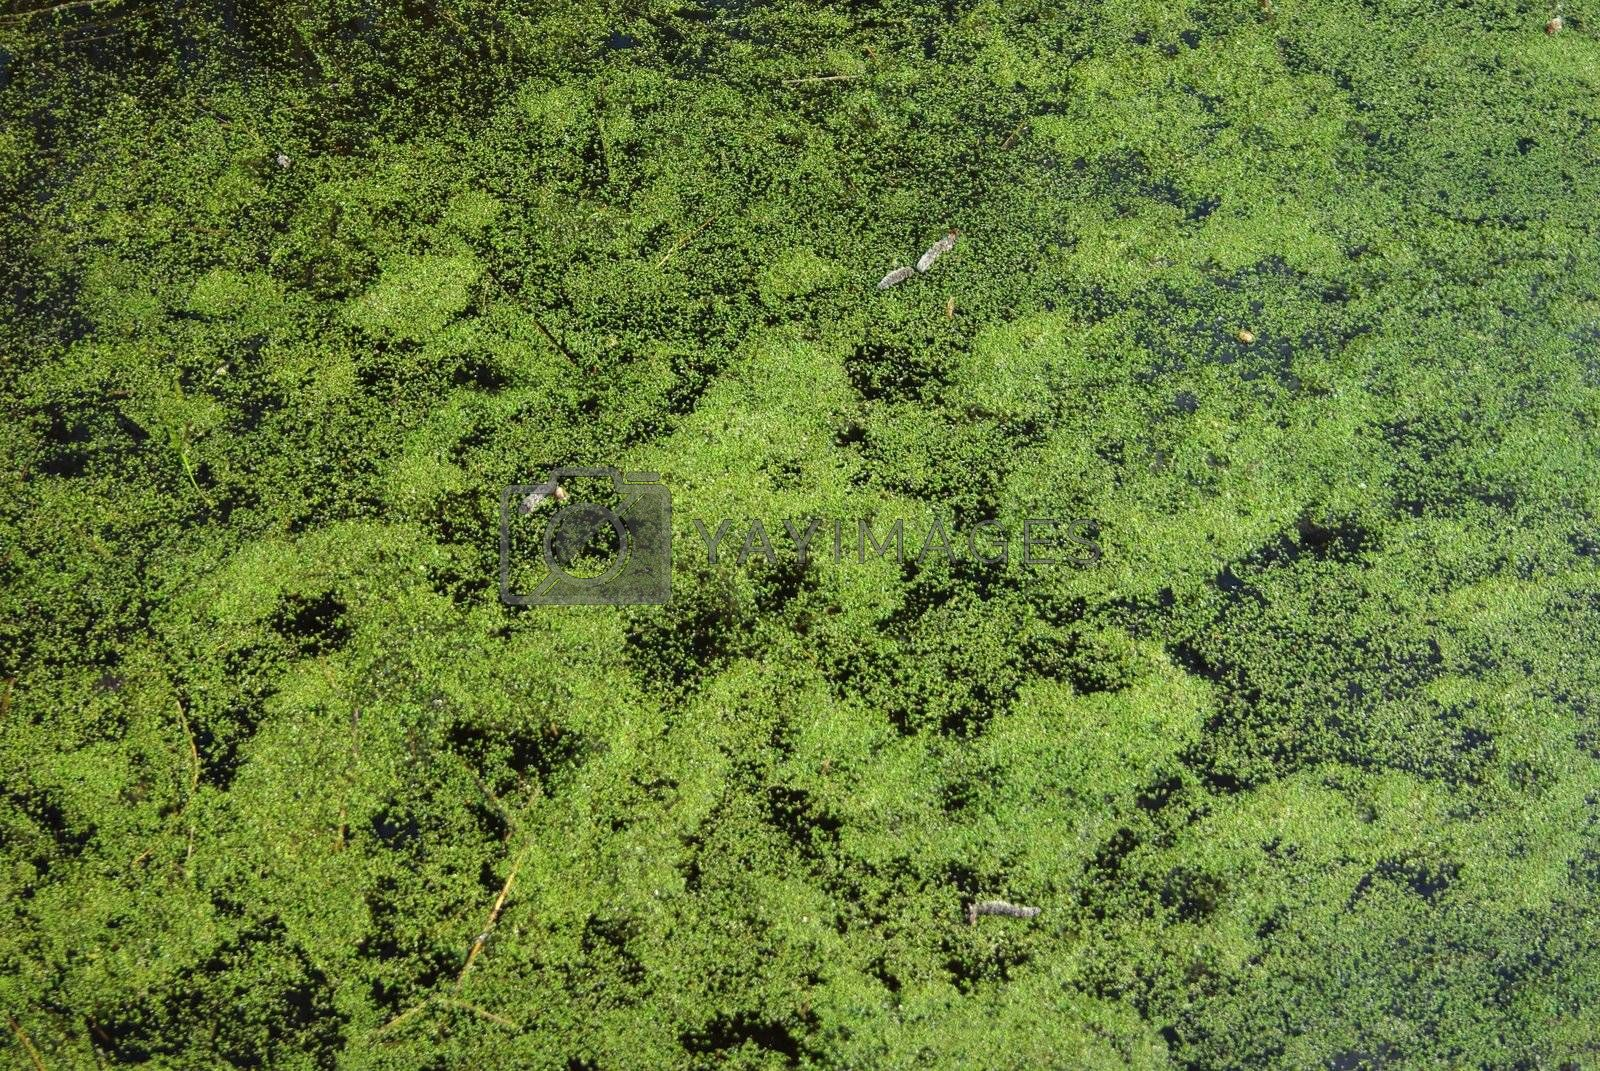 Swamp water in pond with duckweed as background